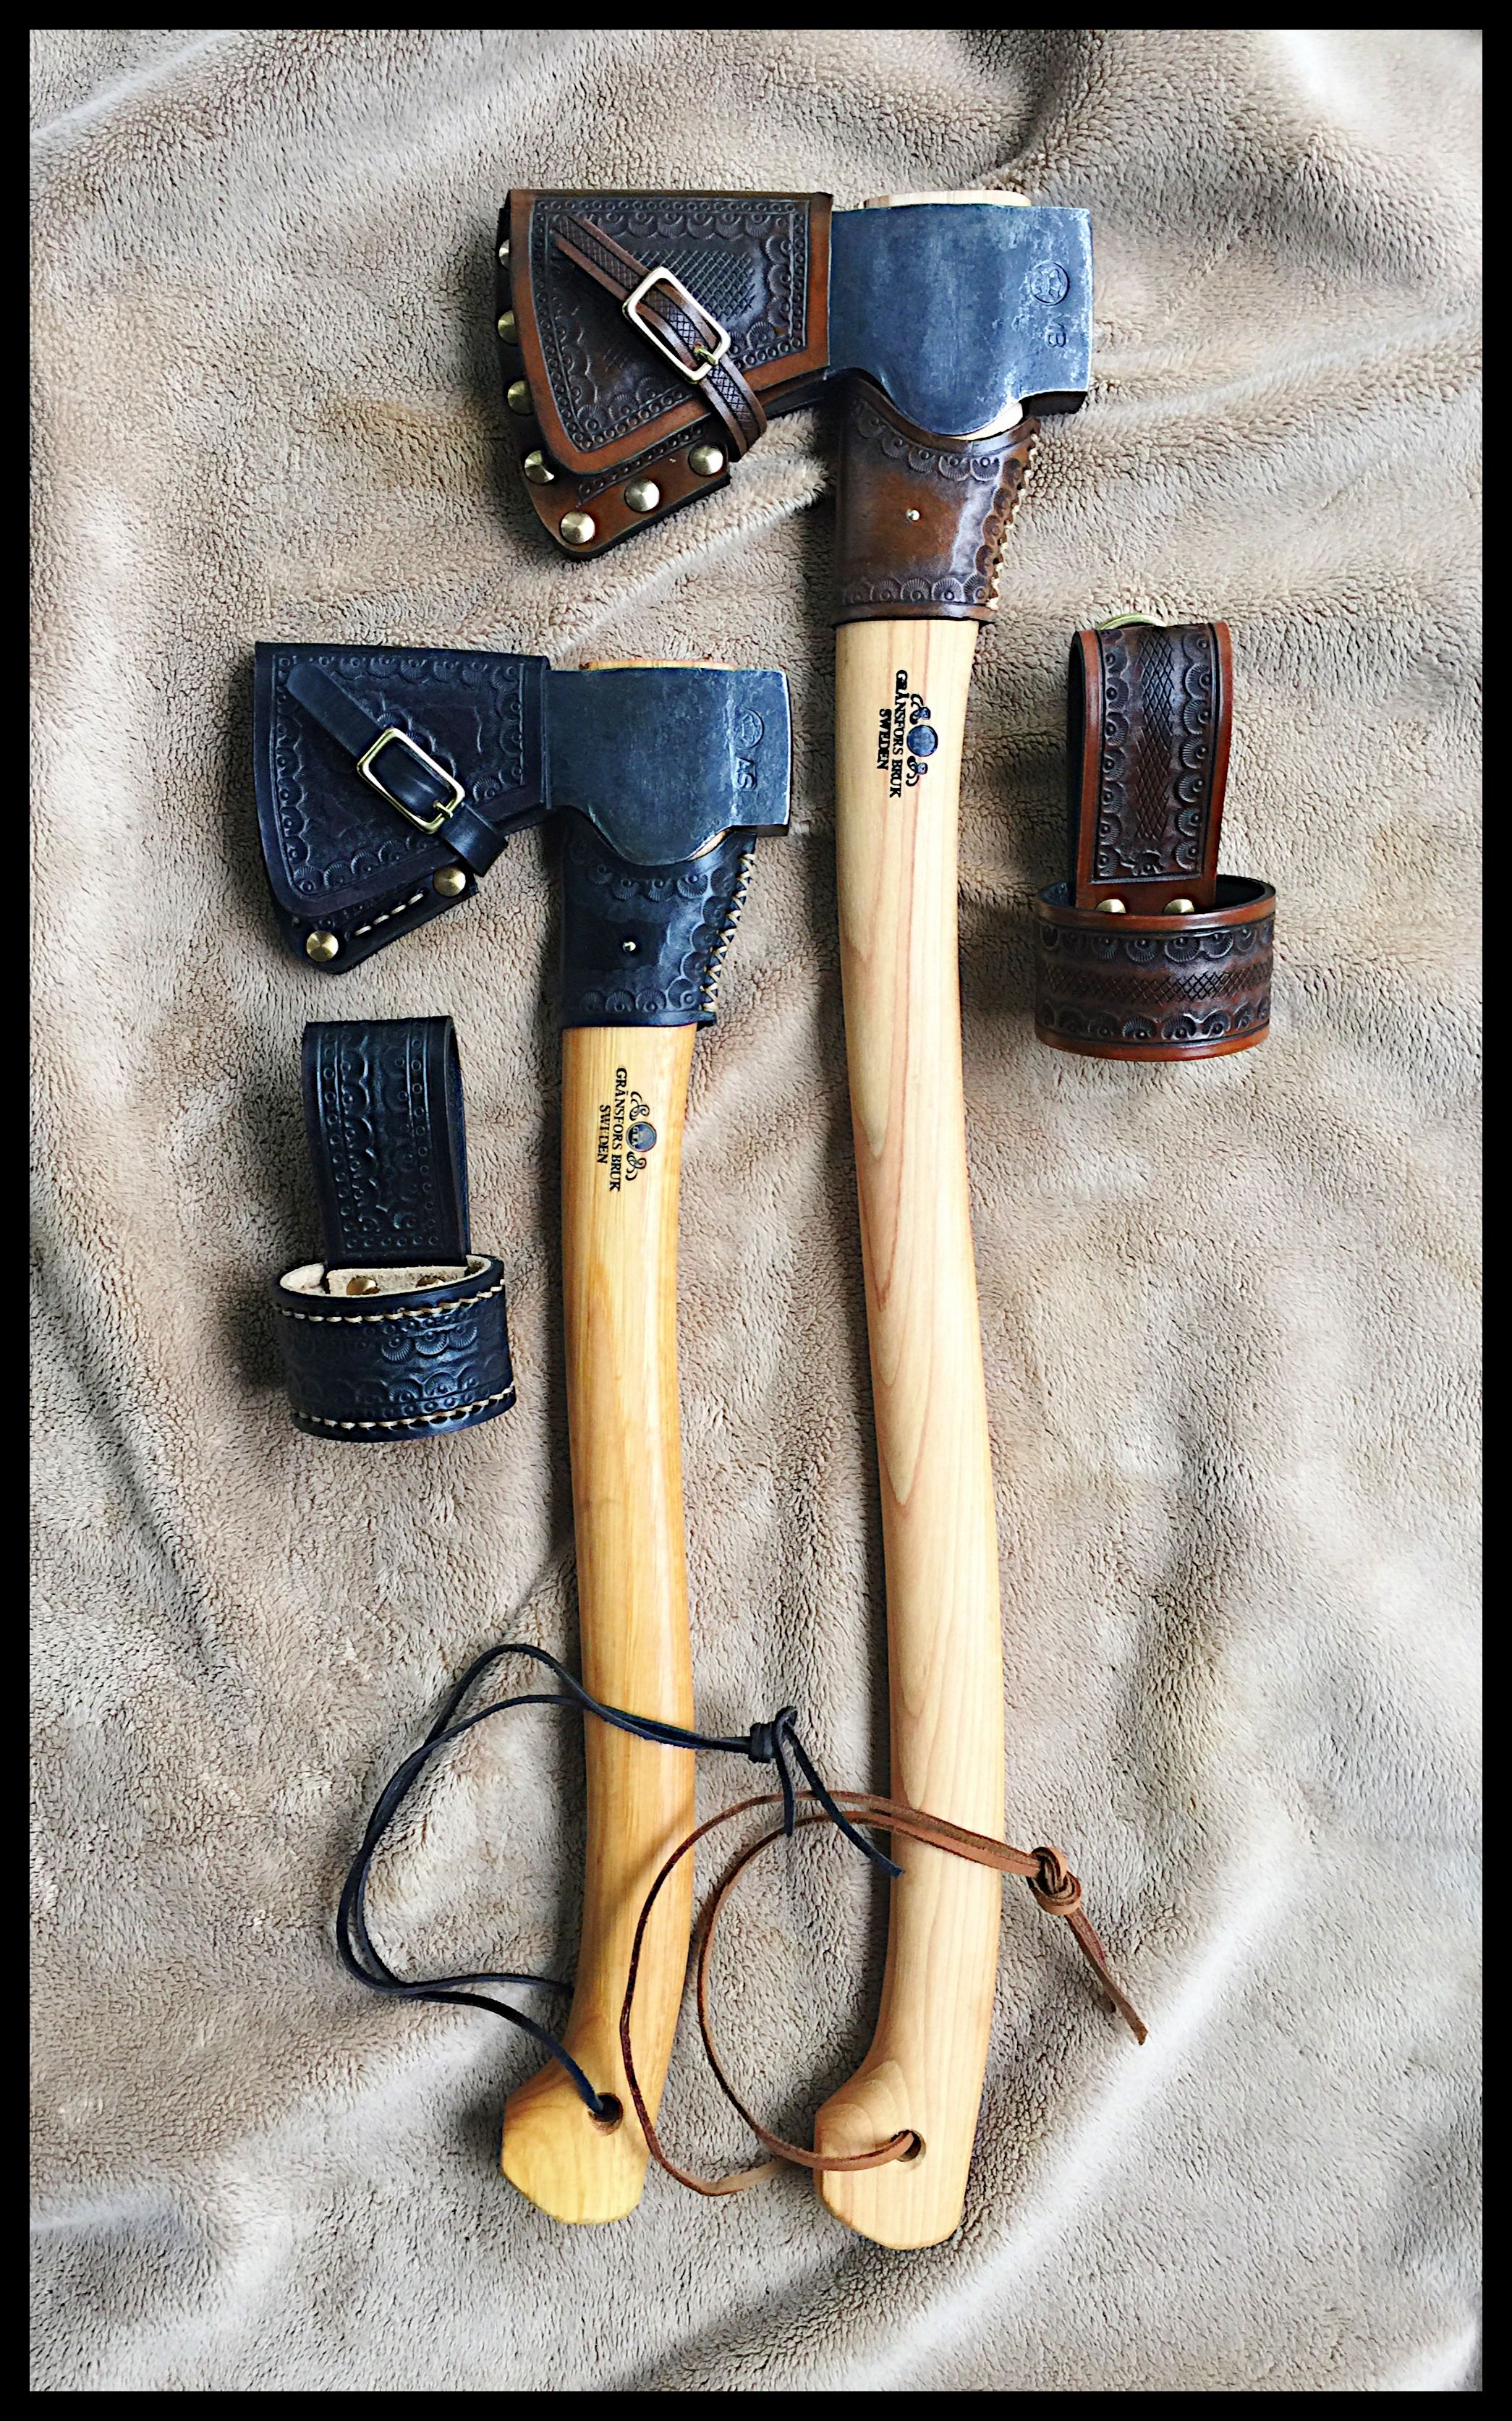 Gransfors Bruks Small Forest Axe Scandinavian Forest Axe Custom Leather Work By John Black Small Forest Axe Axe Axe Sheath